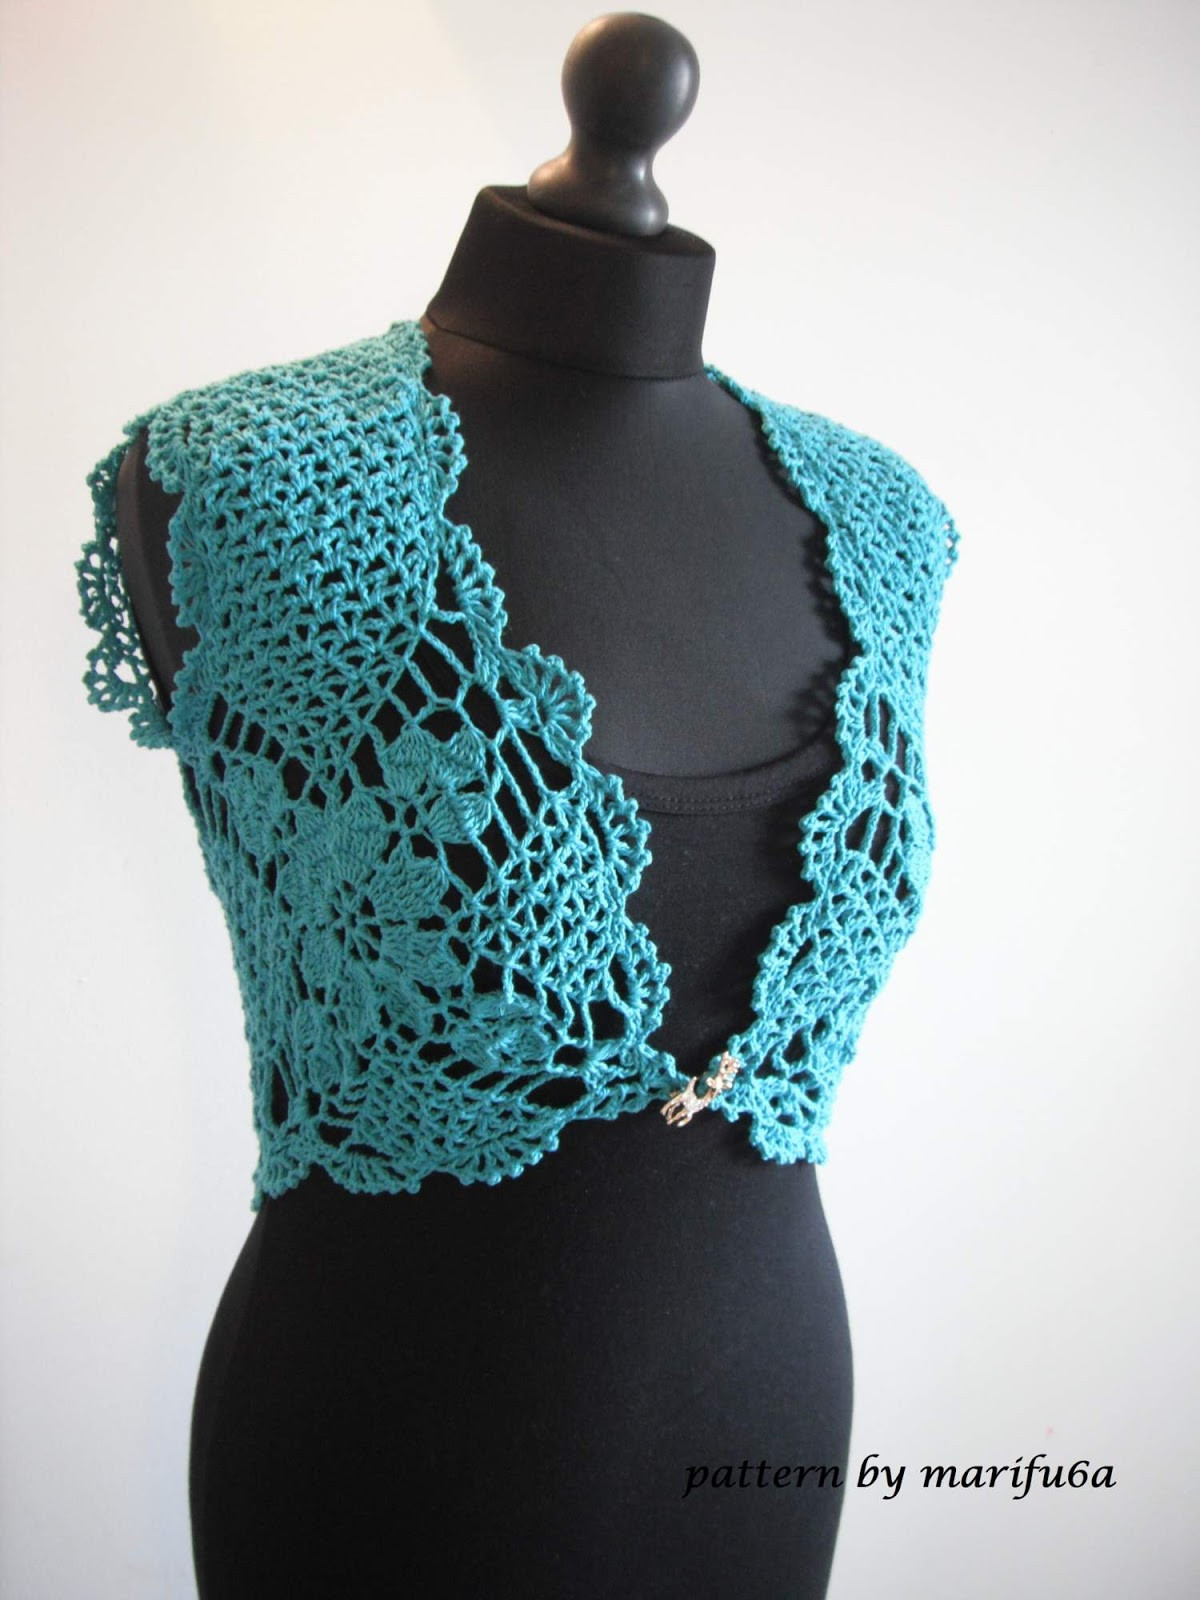 Crochet Best Of Free Crochet Patterns and Video Tutorials How to Crochet Of Fresh 46 Images Crochet